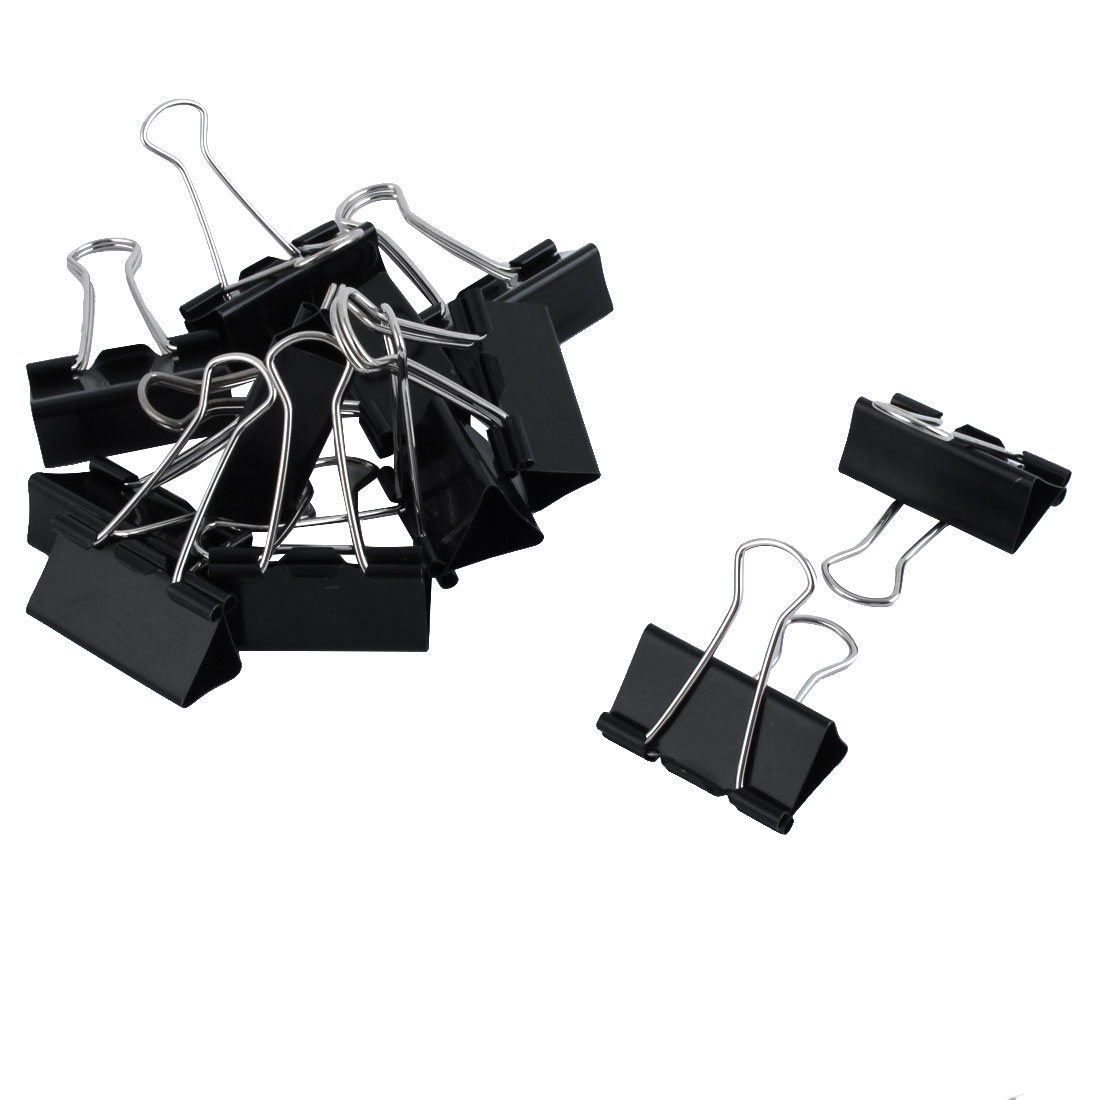 One Dozen 40mm Width Black Metal Office Binder Clips Clamps